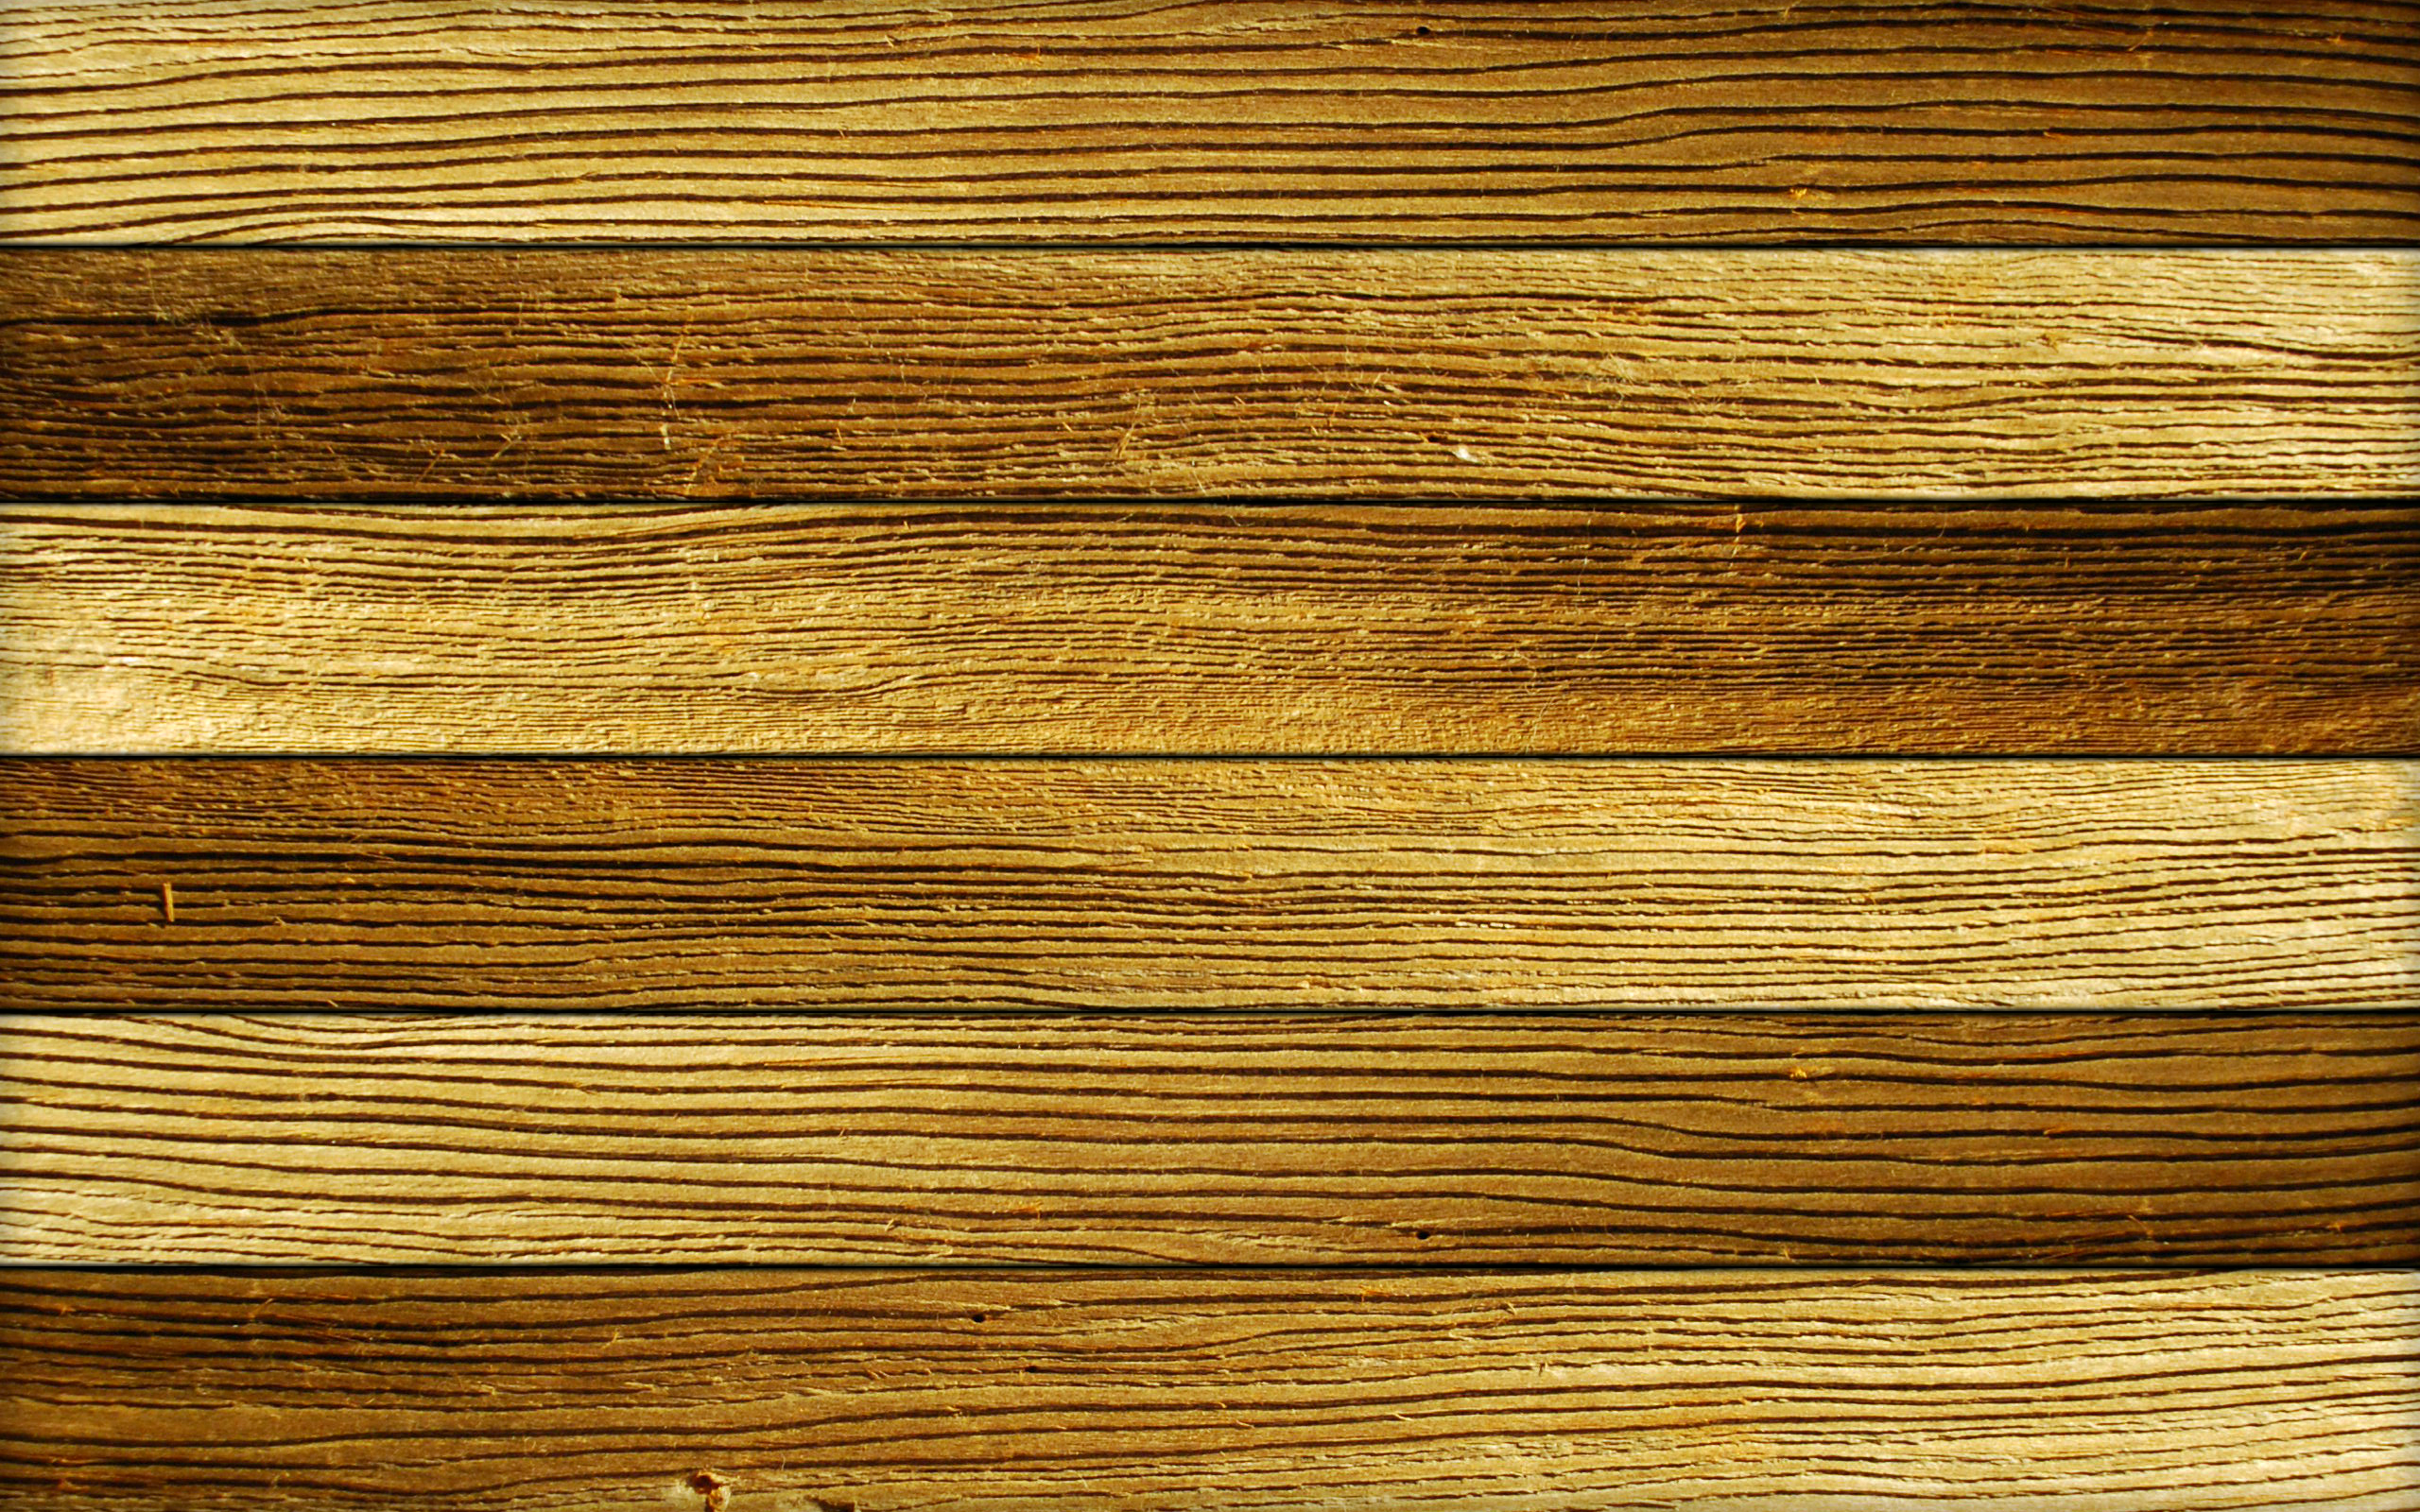 Wood Wallpaper 41396 2560x1600 Px